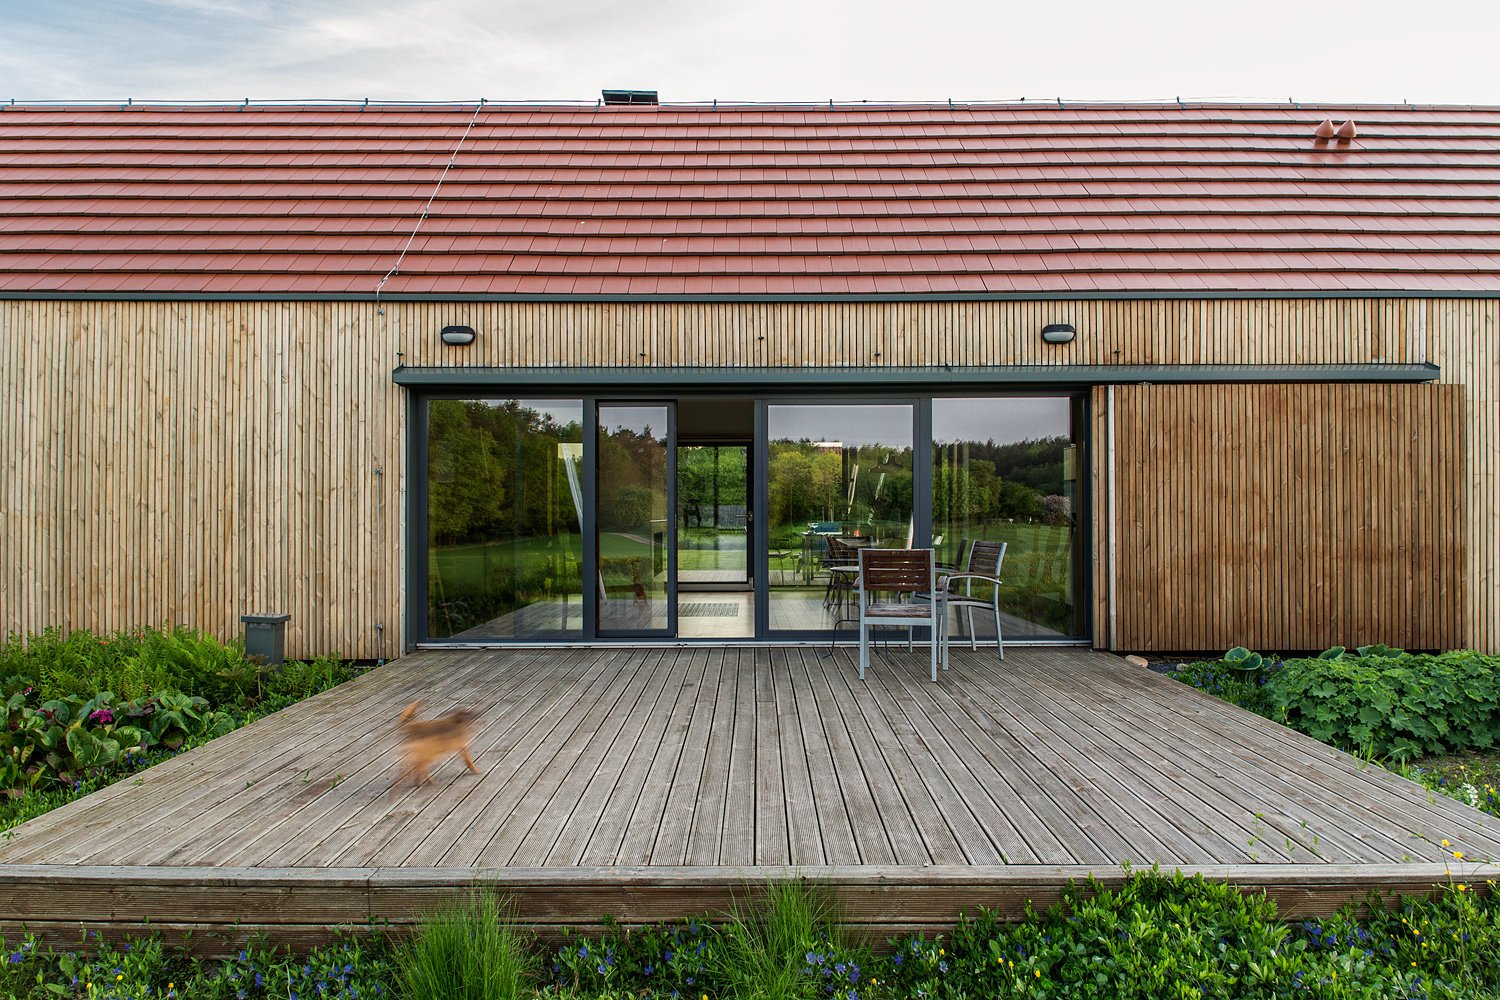 Exterior, House Building Type, Wood Siding Material, A-Frame RoofLine, Tile Roof Material, and Farmhouse Building Type  Nowa Górka by Studio GAB